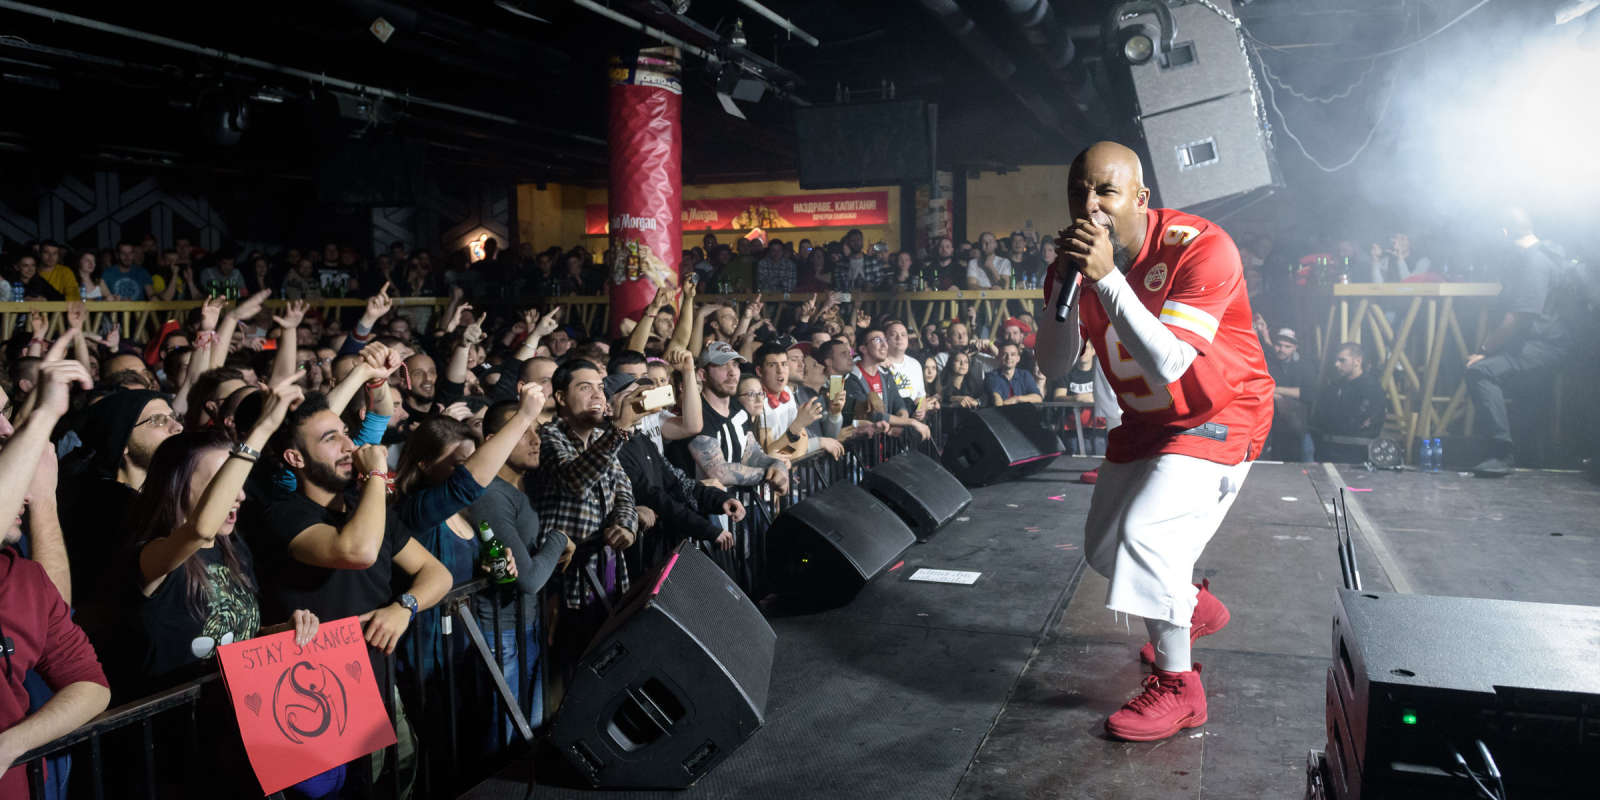 Shots taken during Tech N9NE show in Sofia, Bulgaria in march 2019.